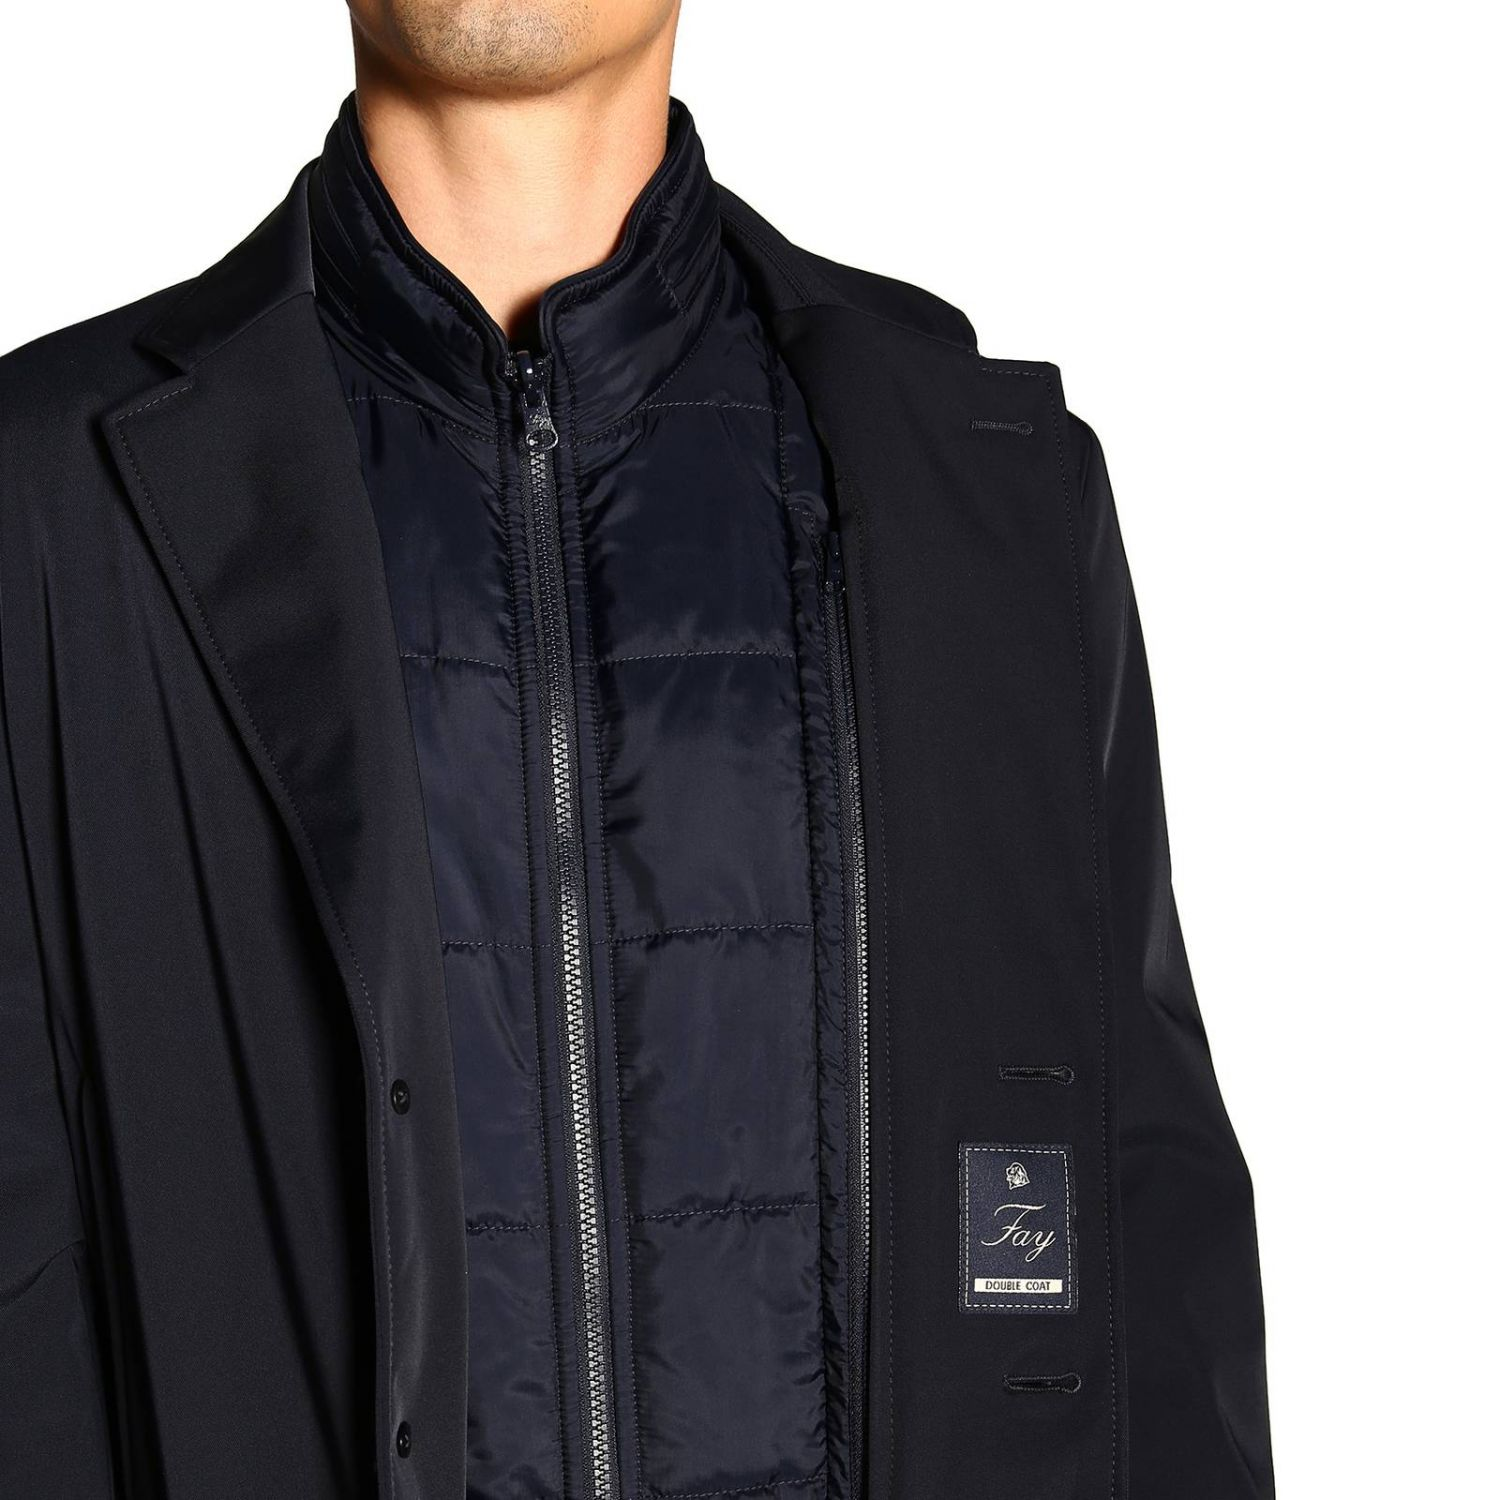 Jacket men Fay blue 5